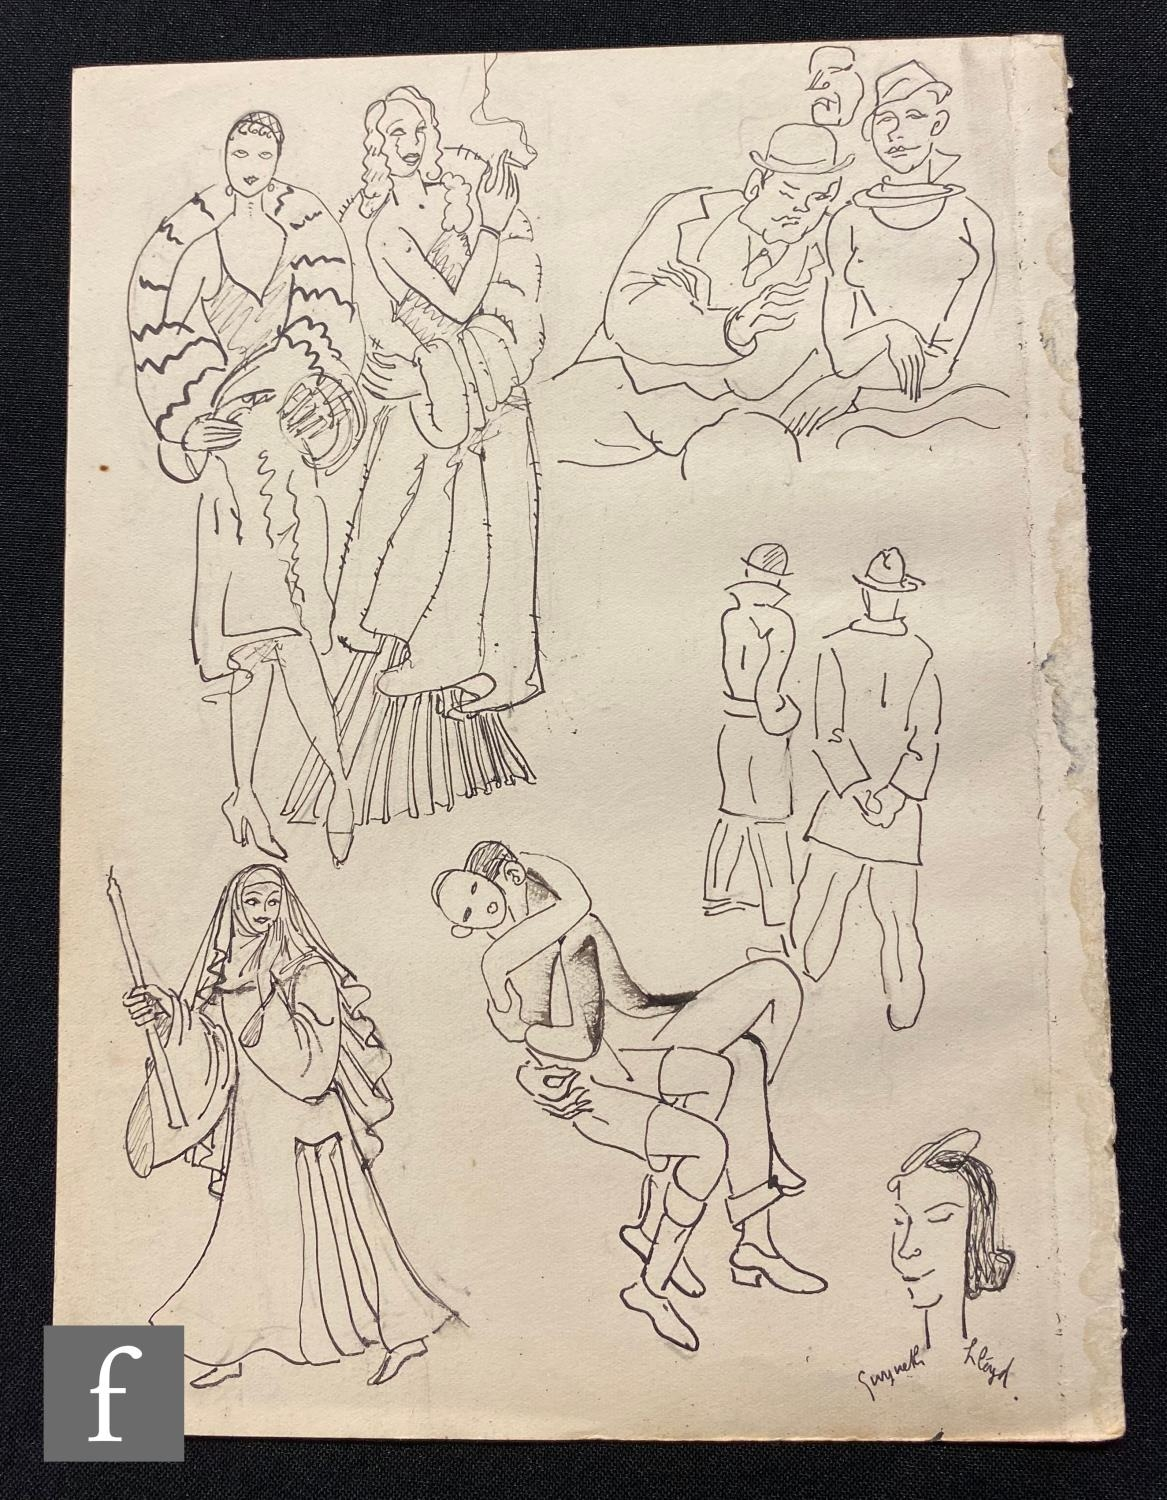 ALBERT WAINWRIGHT (1898-1943) - A study of figures including fashionable ladies in evening dress and